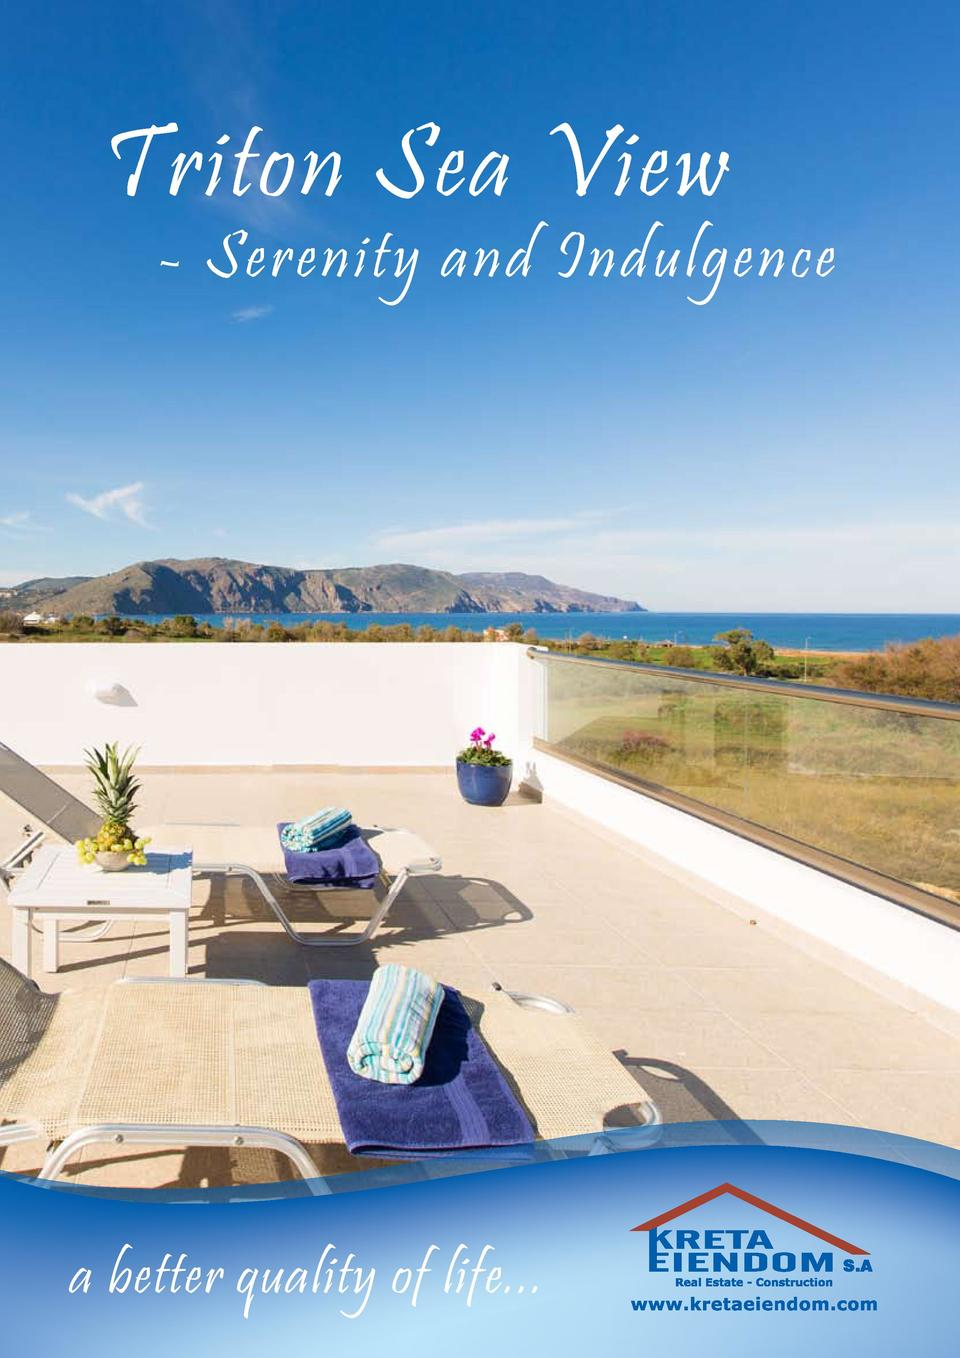 Triton Sea View  - Serenity and Indulgence  a better quality of life...